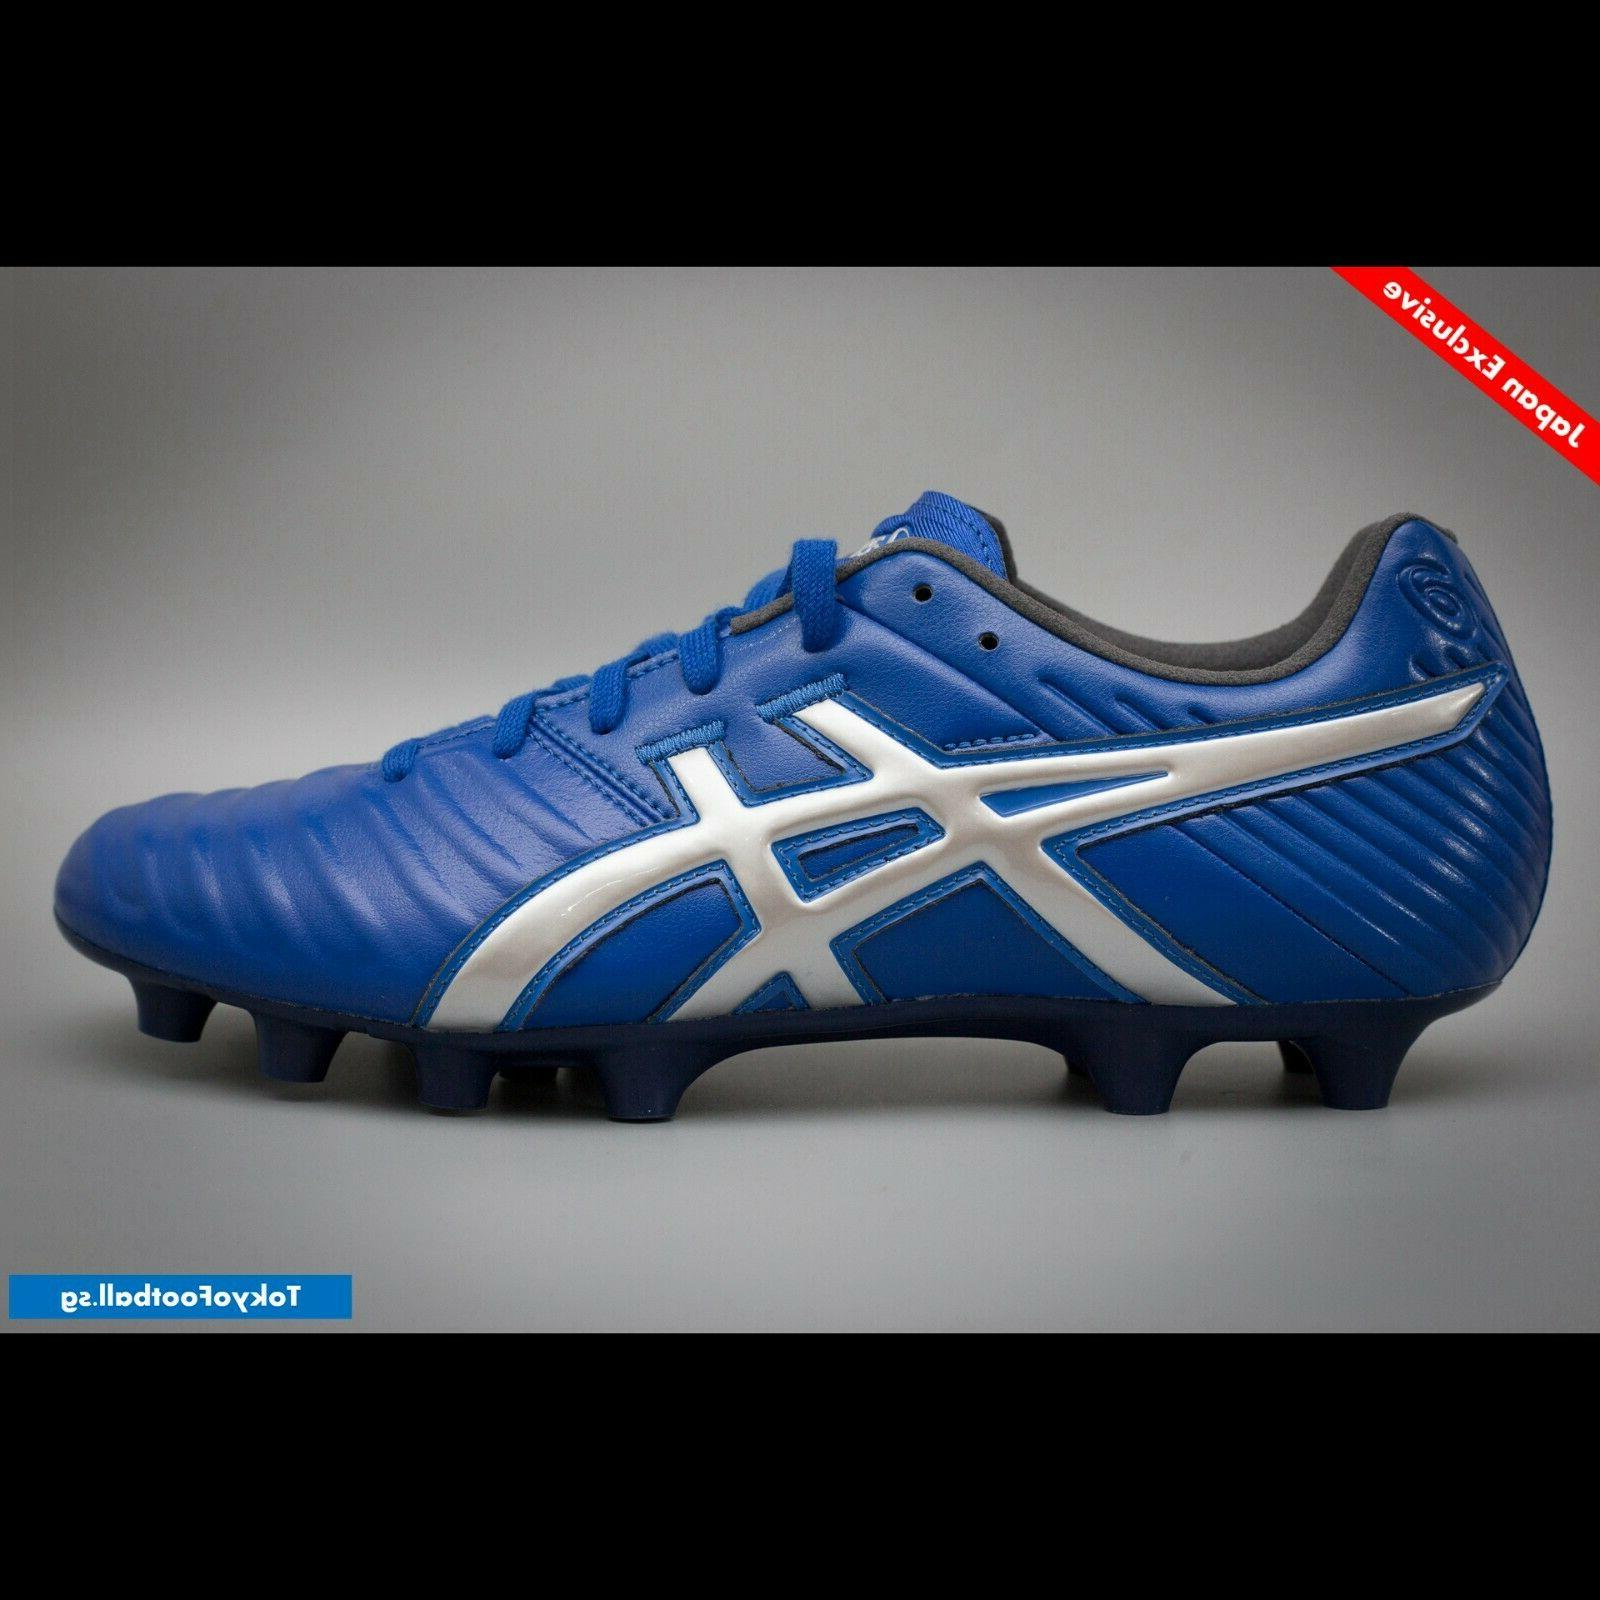 Asics Wide Japan soccer cleats shoes